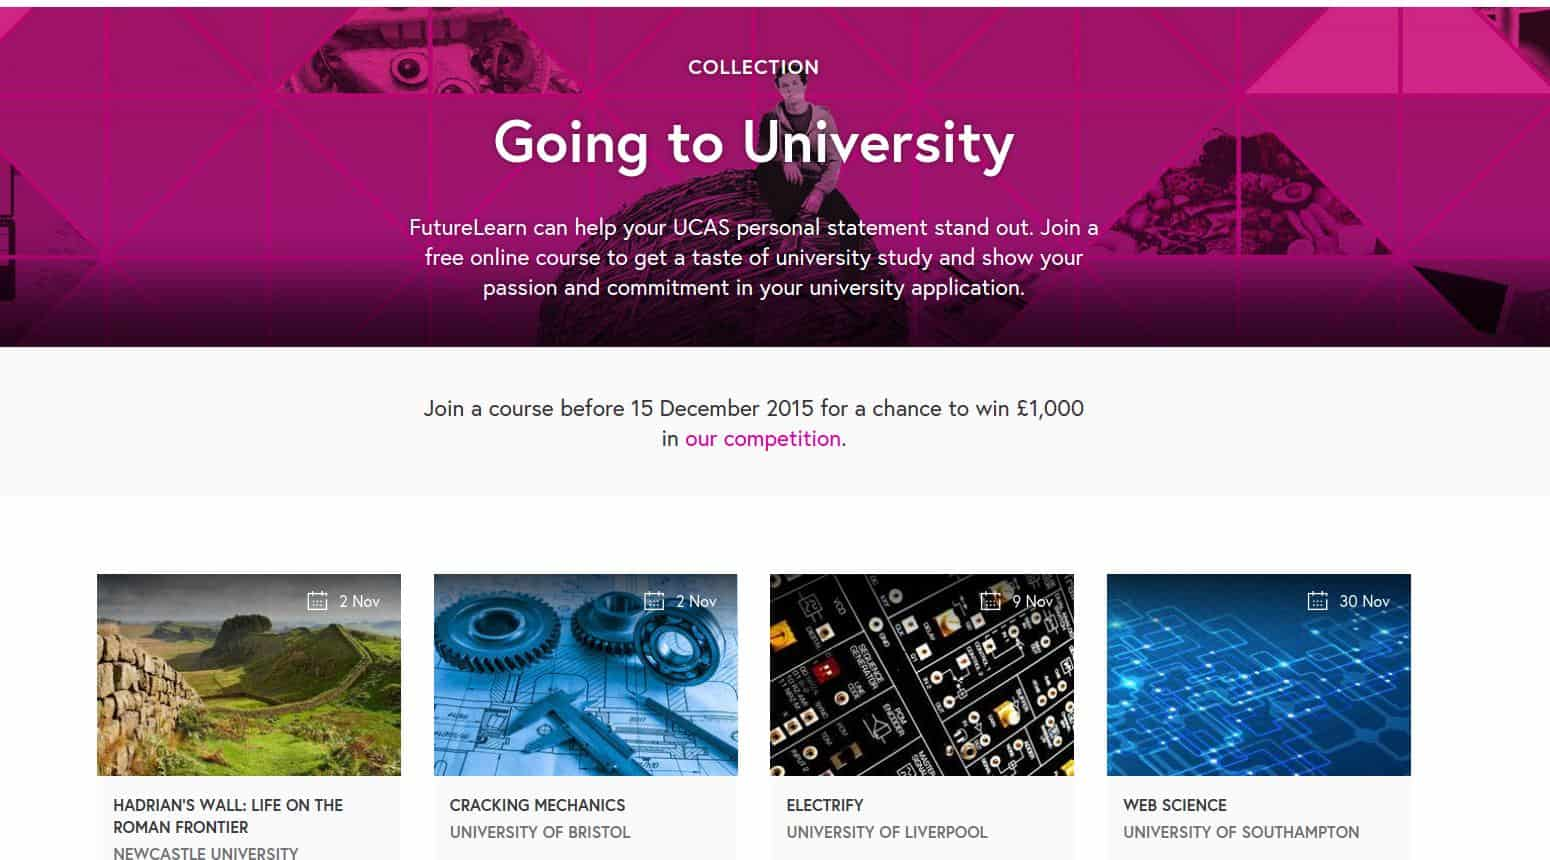 FutureLearn Going to University